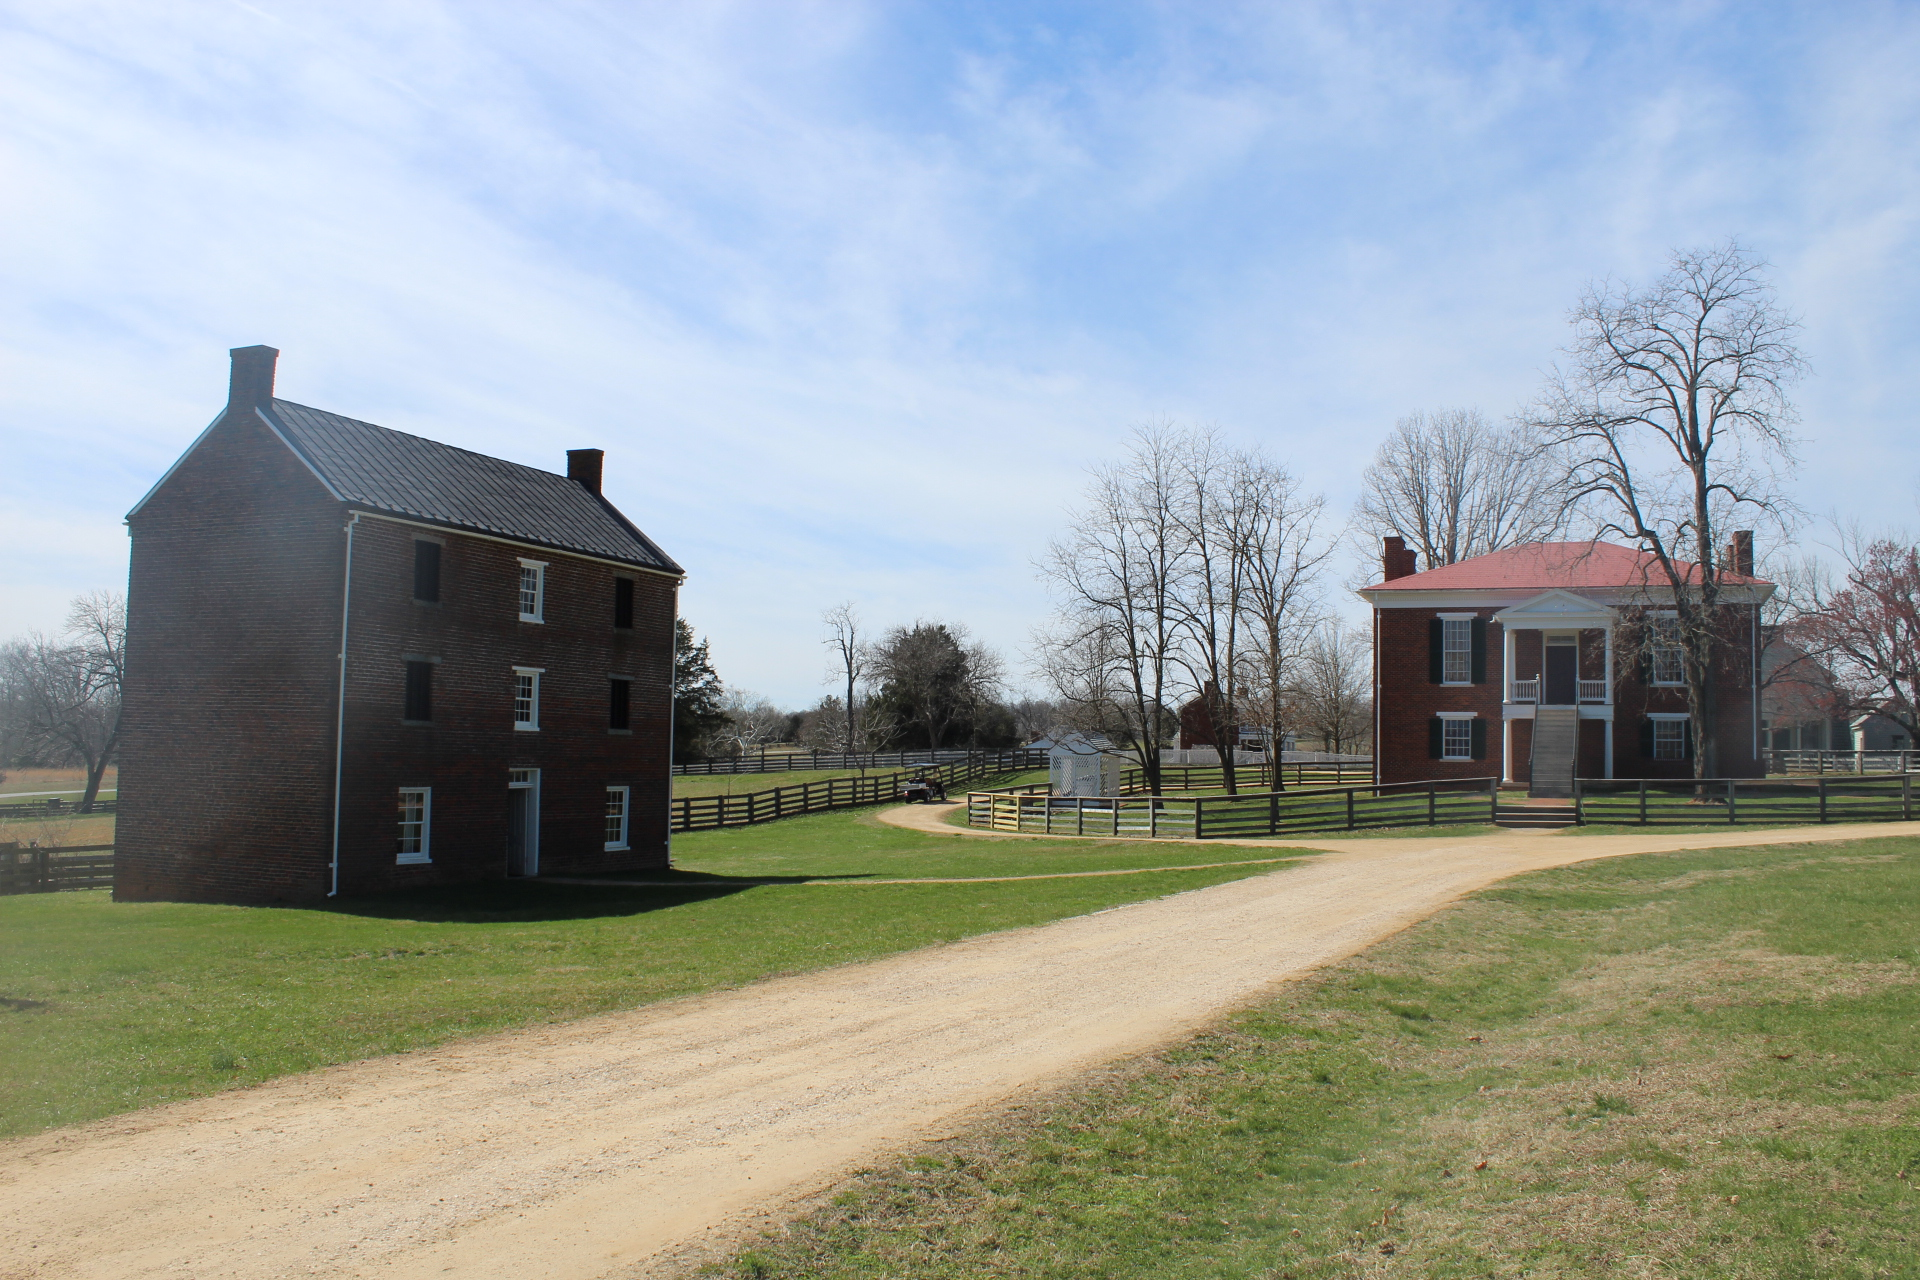 The Appomattox Jail and Court House